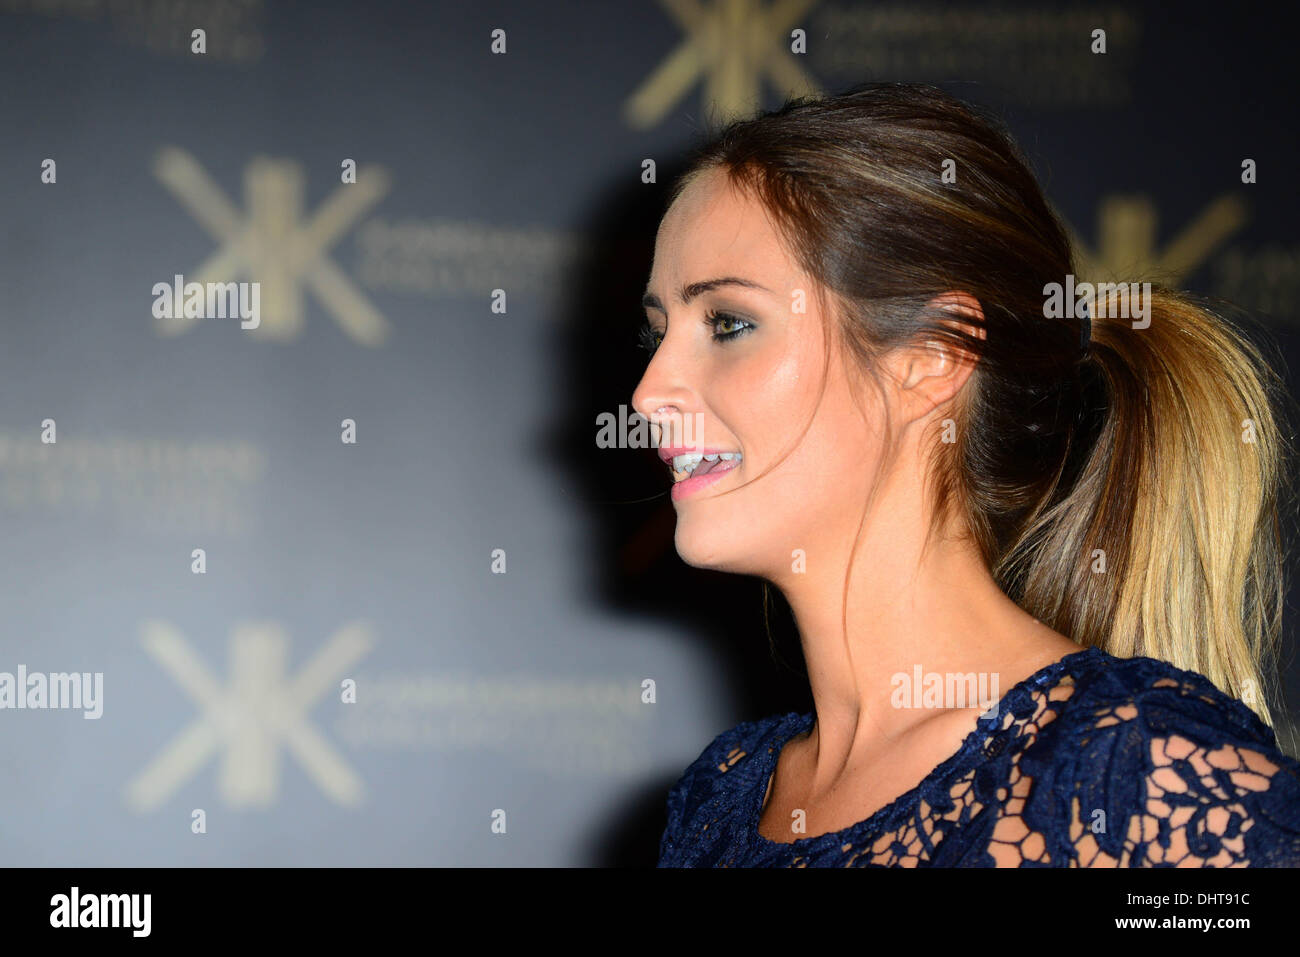 London UK 14th Nov 2013 :  Fran Newman-Young attends the launch party for the Kardashian Kollection for Lipsy at - Stock Image